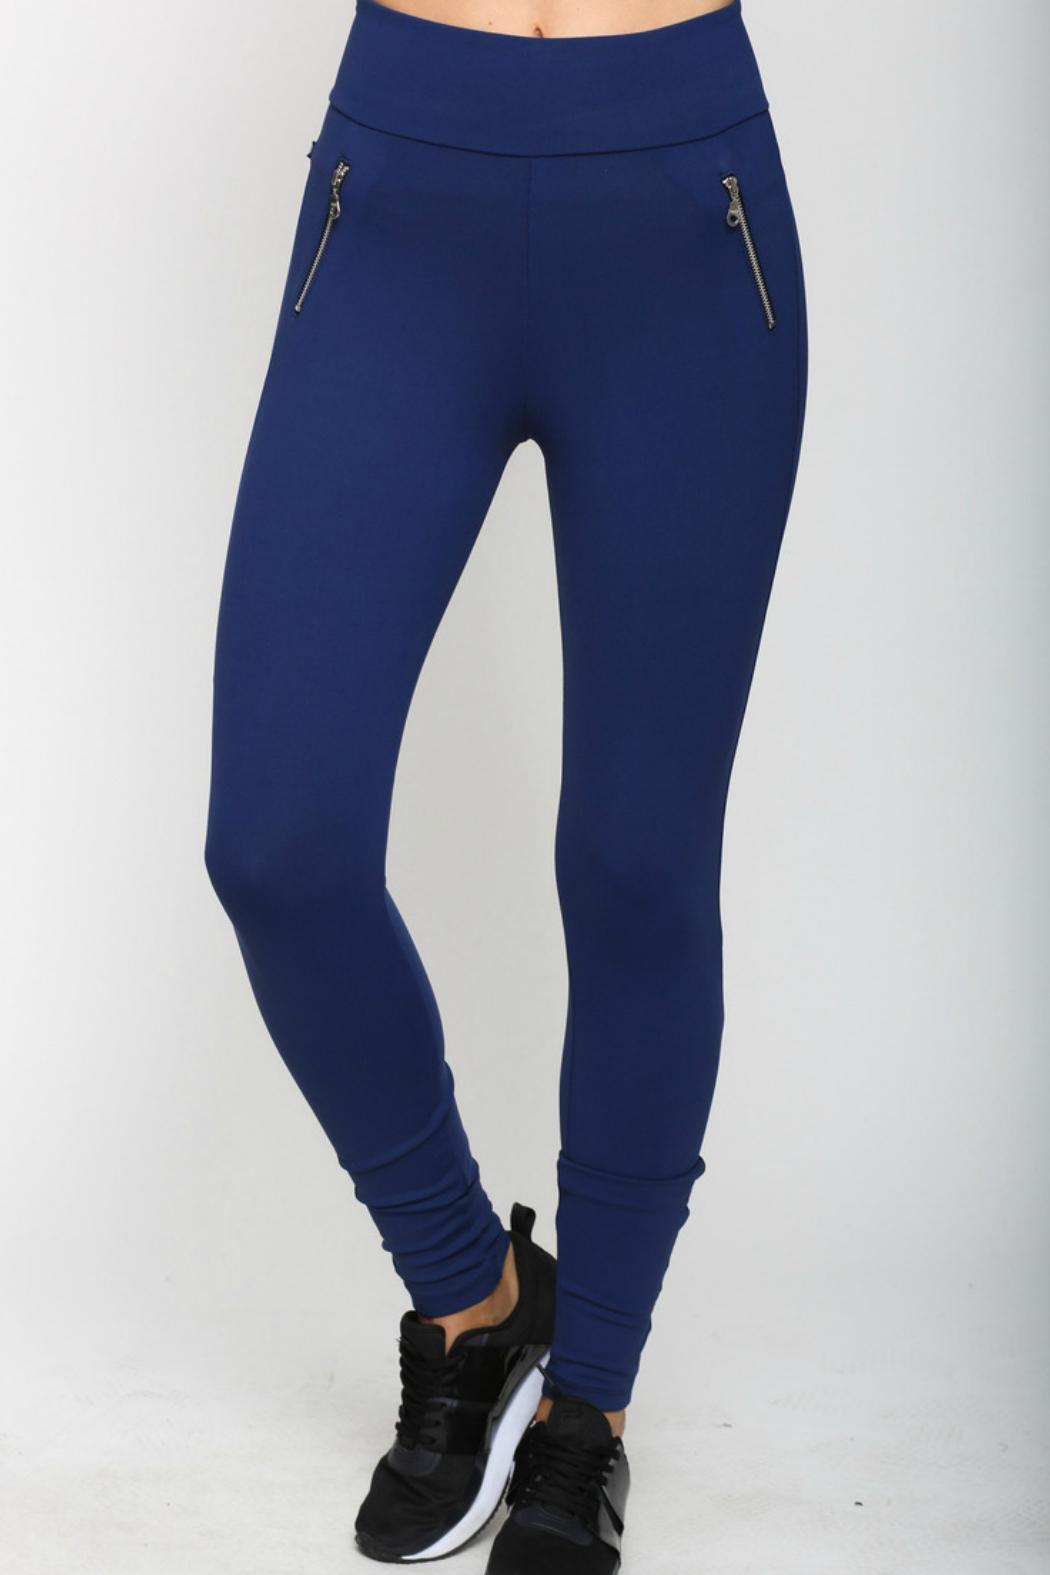 Meshica Sport Navy Blue Legging - Front Cropped Image